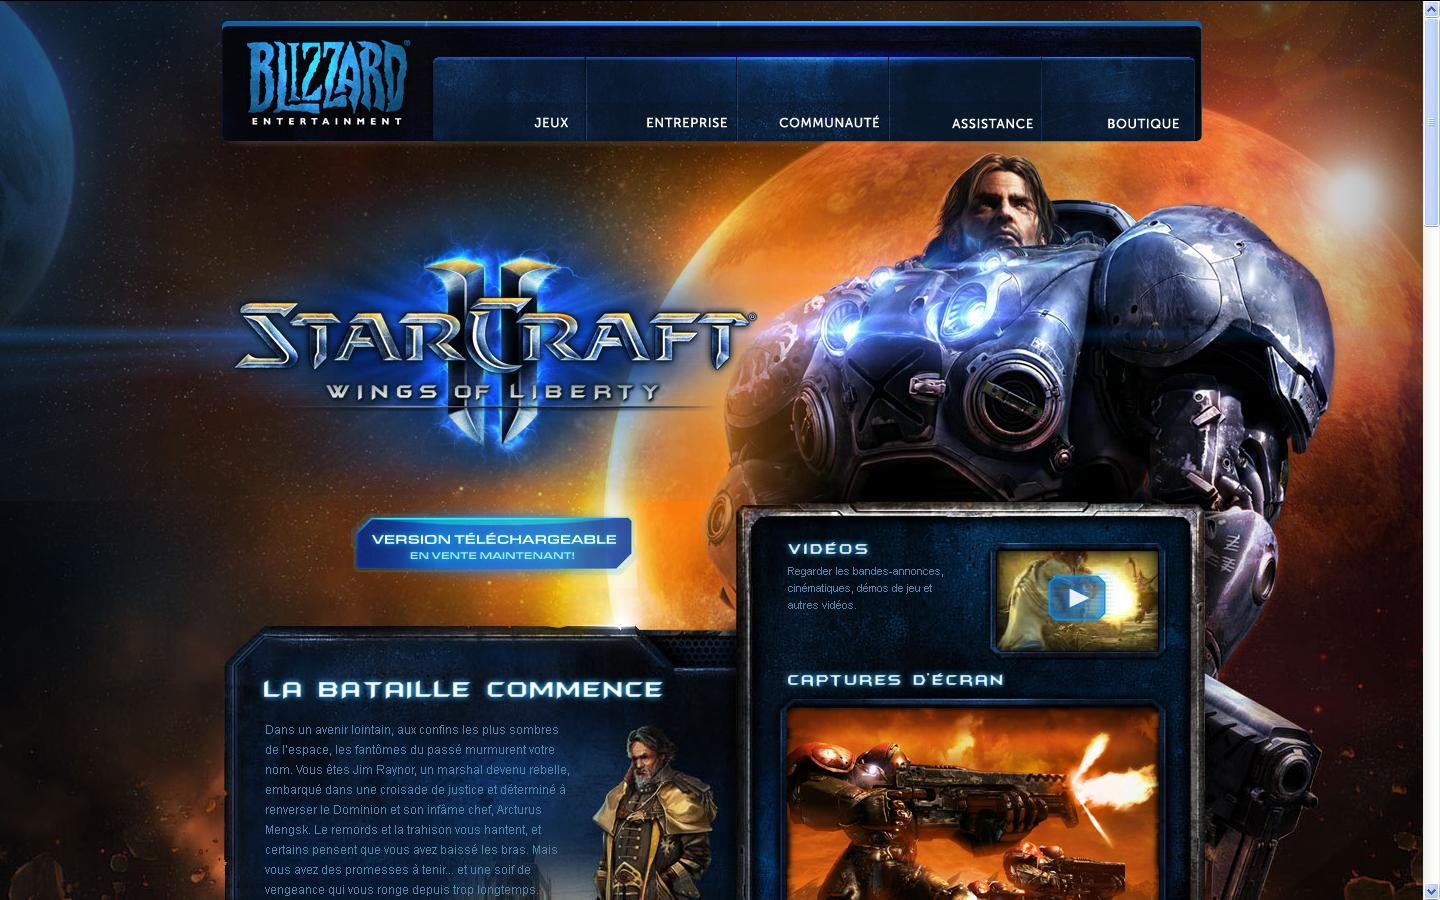 jeu video StarCraft sur le site internet blizzard